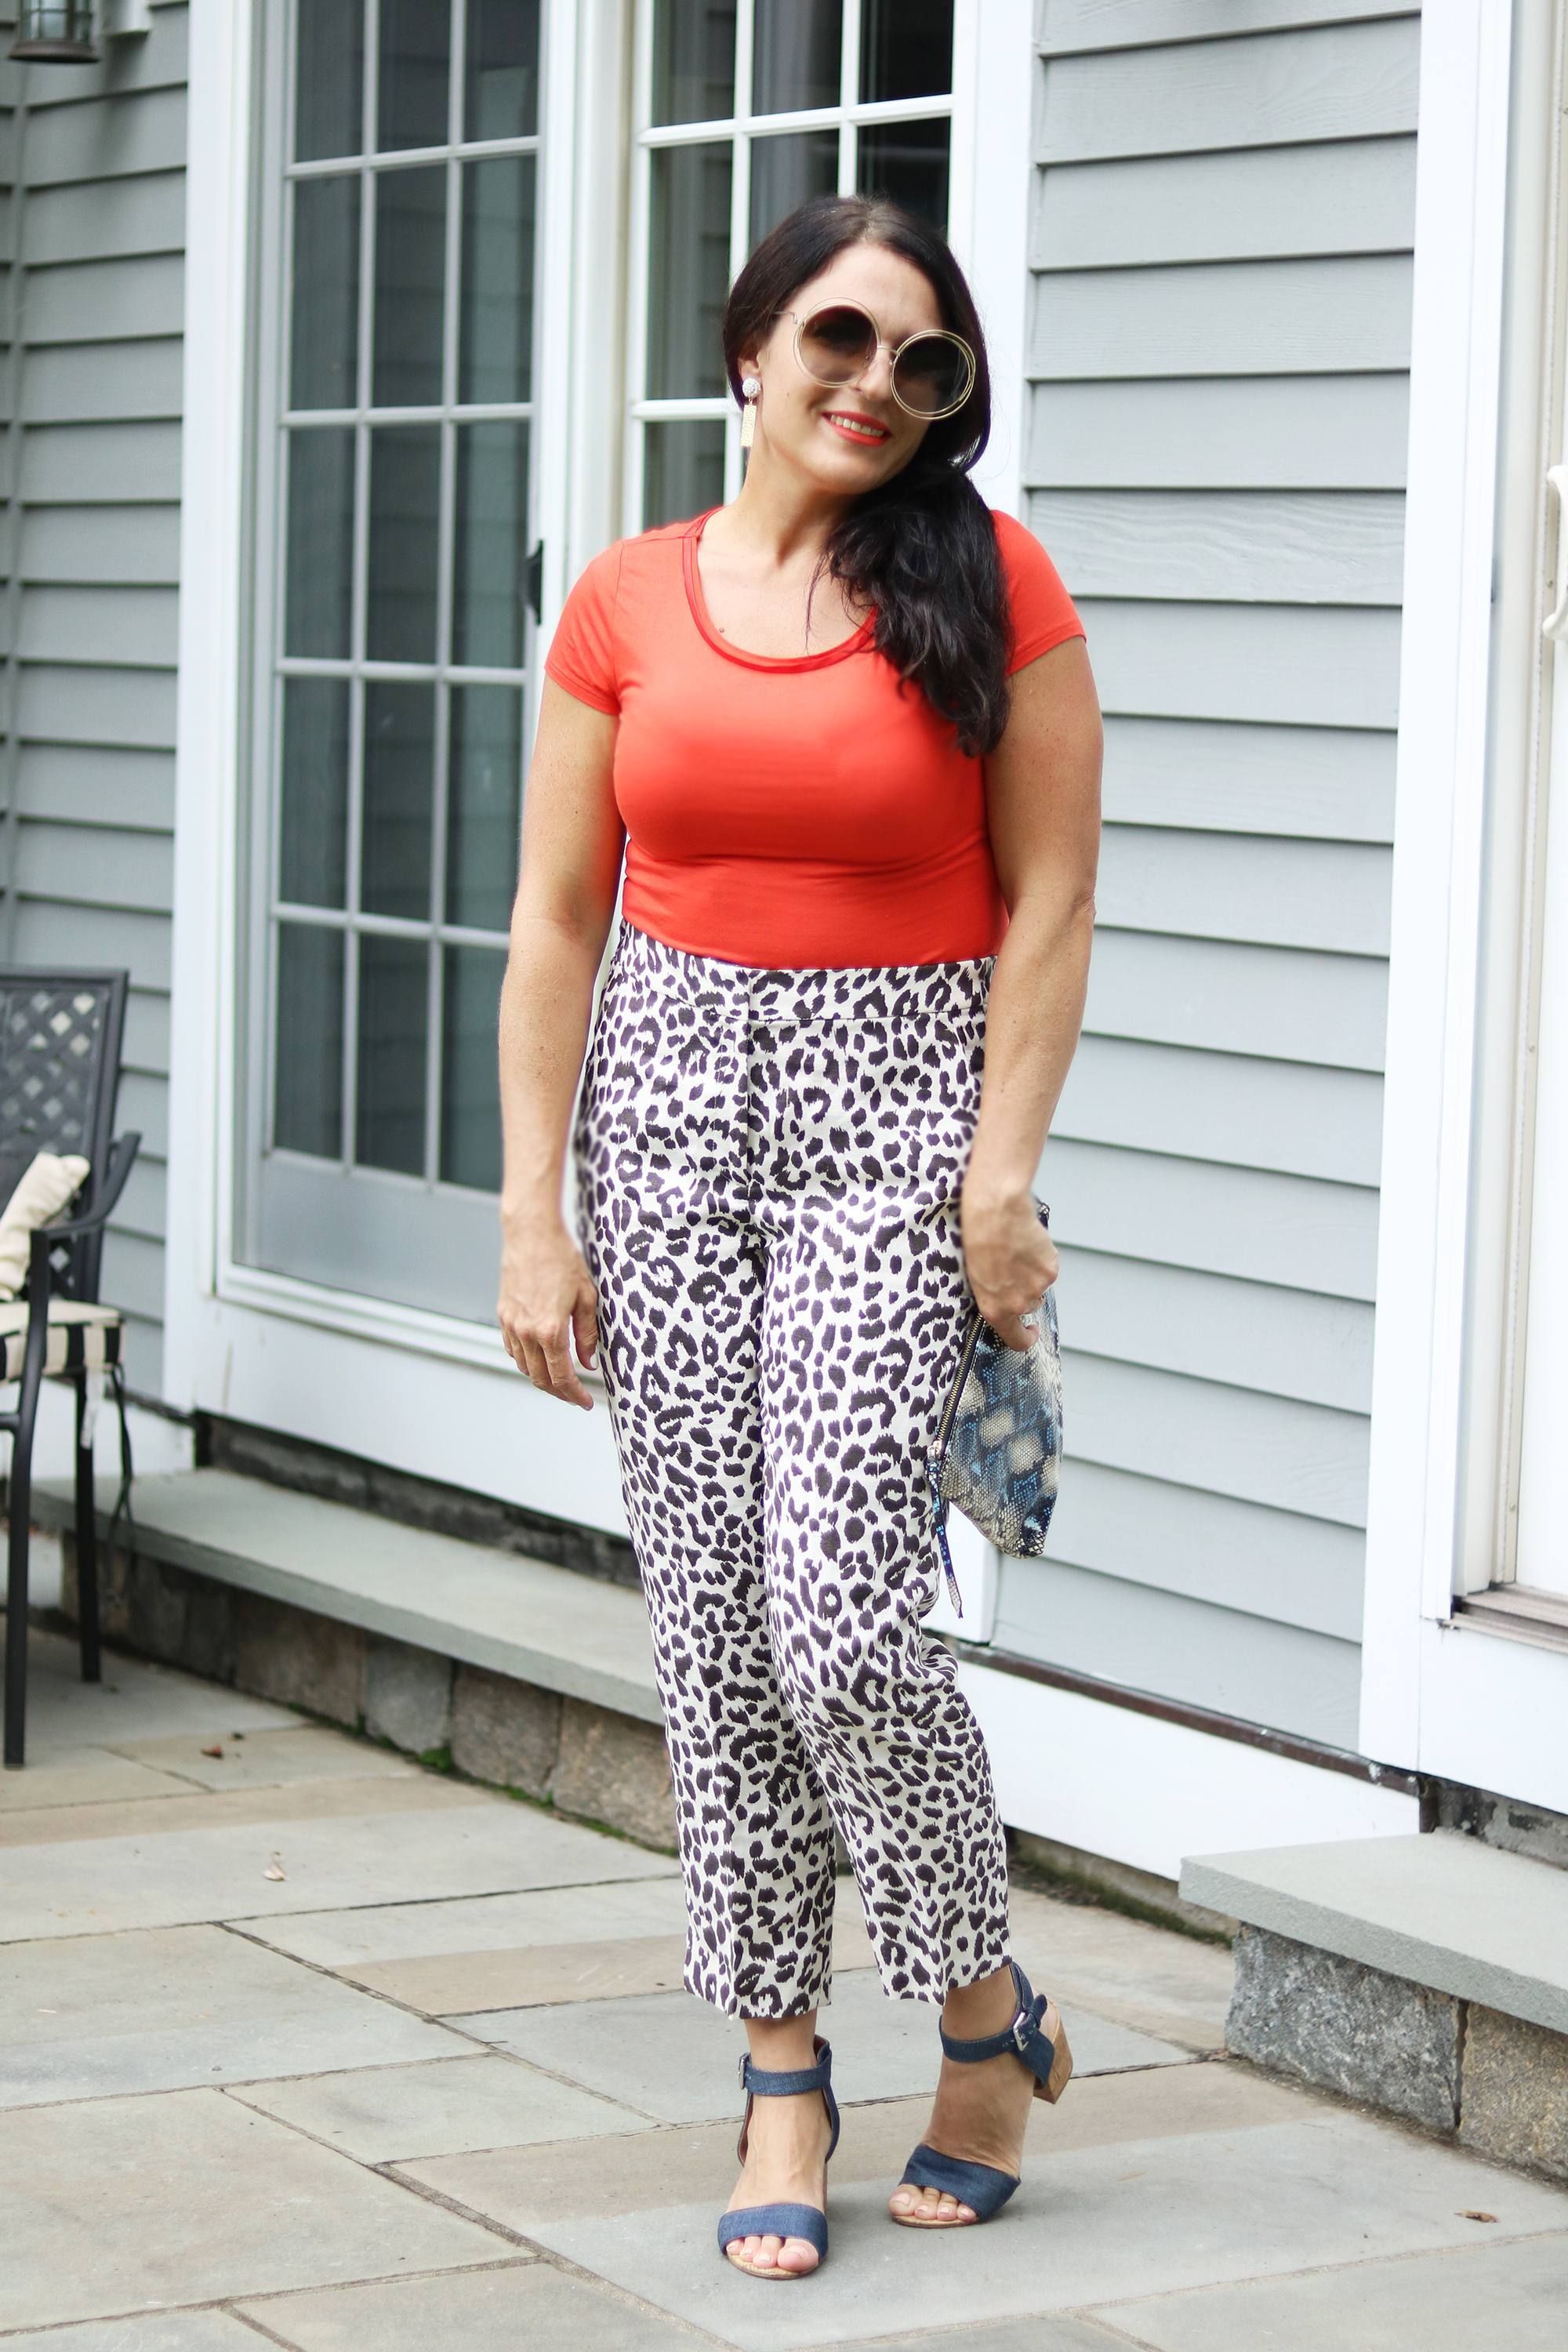 New England Fall Activities plus favorite leopard print Styles || Darling Darleen #darlingdarleen #leopardprint #falloutfit